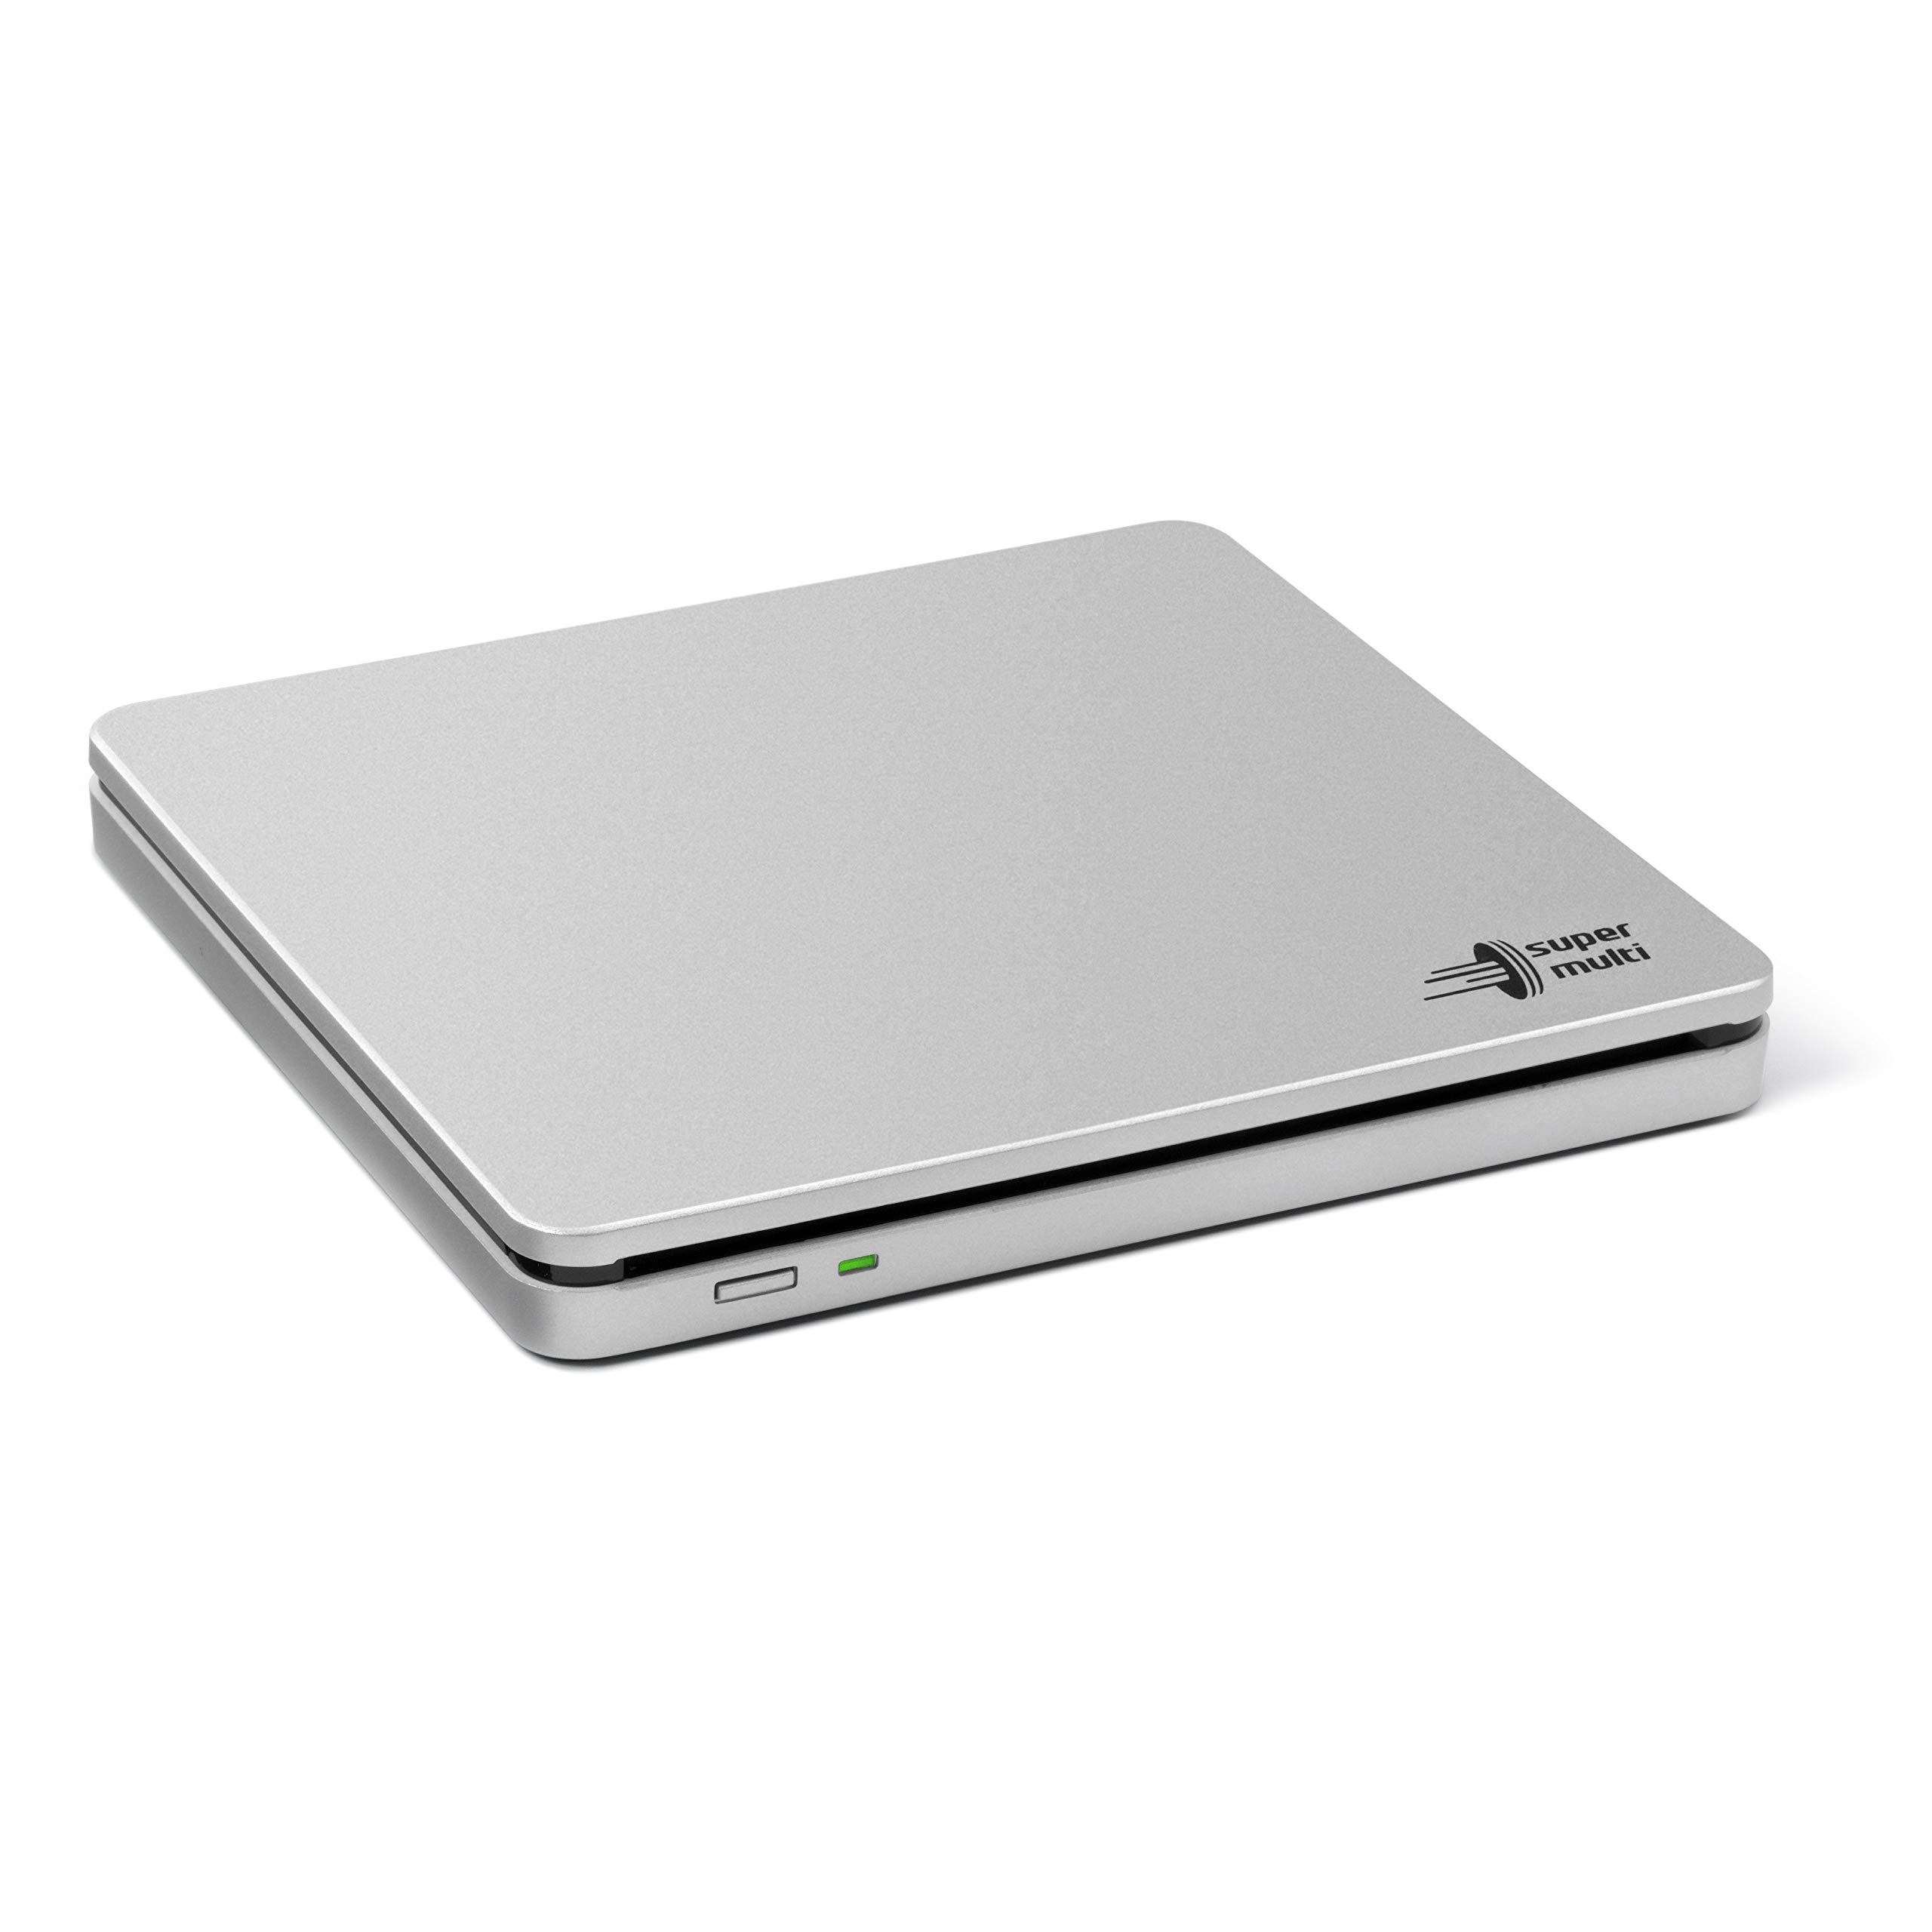 Hitachi-LG GP70 External DVD Drive, Slim Portable DVD Player/Writer for Laptop, Desktop PC, USB 2.0, Windows and Mac OS Compatible,with TV Connectivity, M-Disc Support, 8x Read/Write Speed - Silver